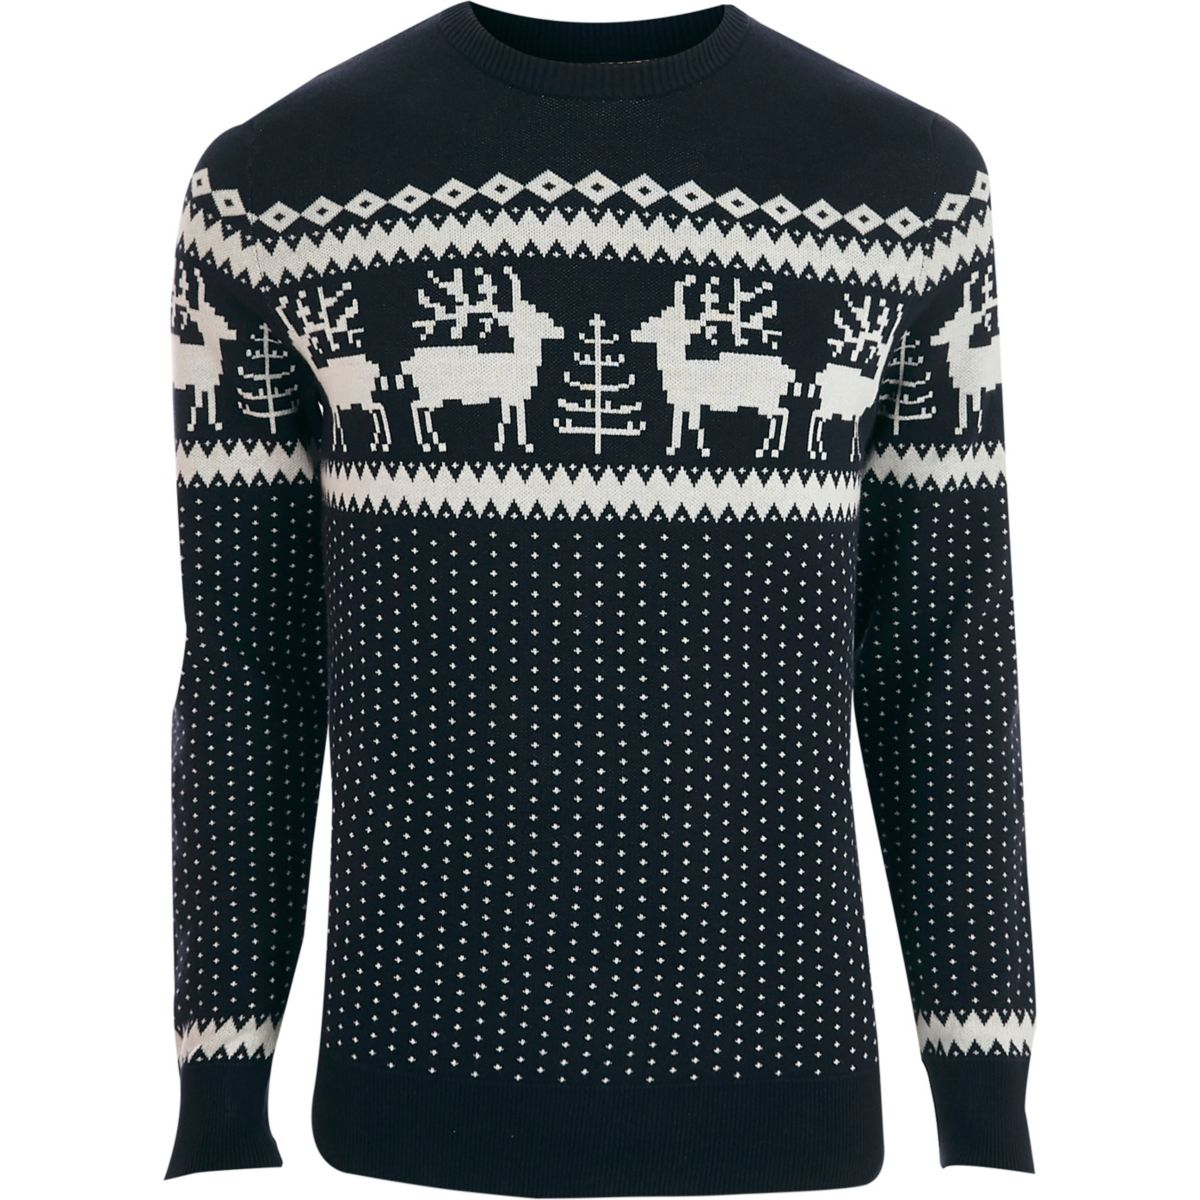 Jack & Jones Premium navy Christmas sweater